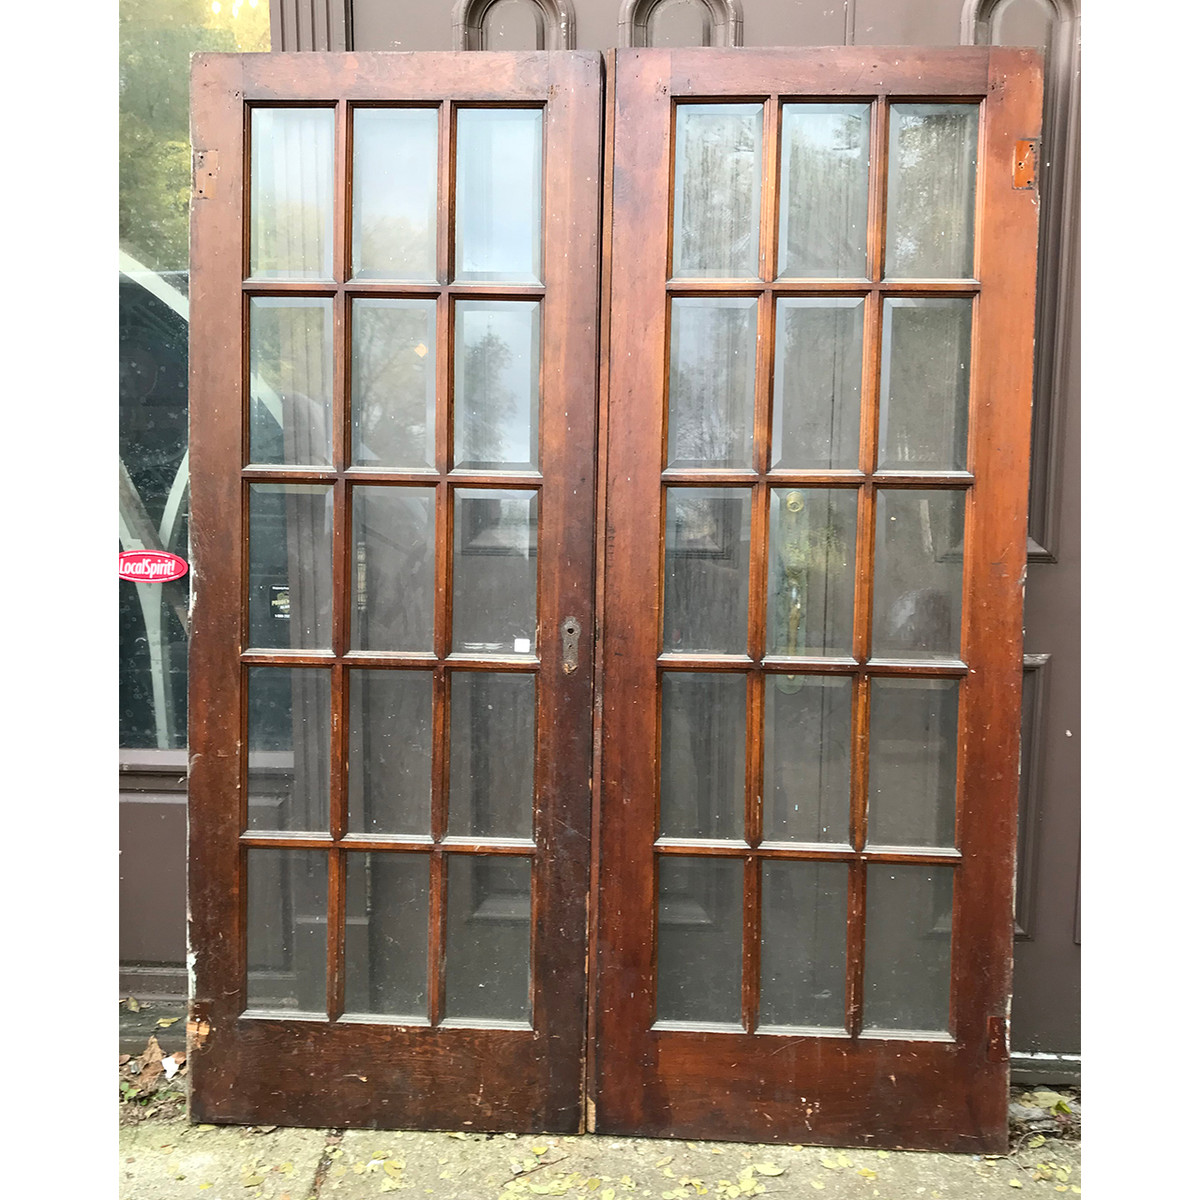 D18185 - Pair of Antique Pine Interior/Exterior Beveled Glass French Doors  60-3/4